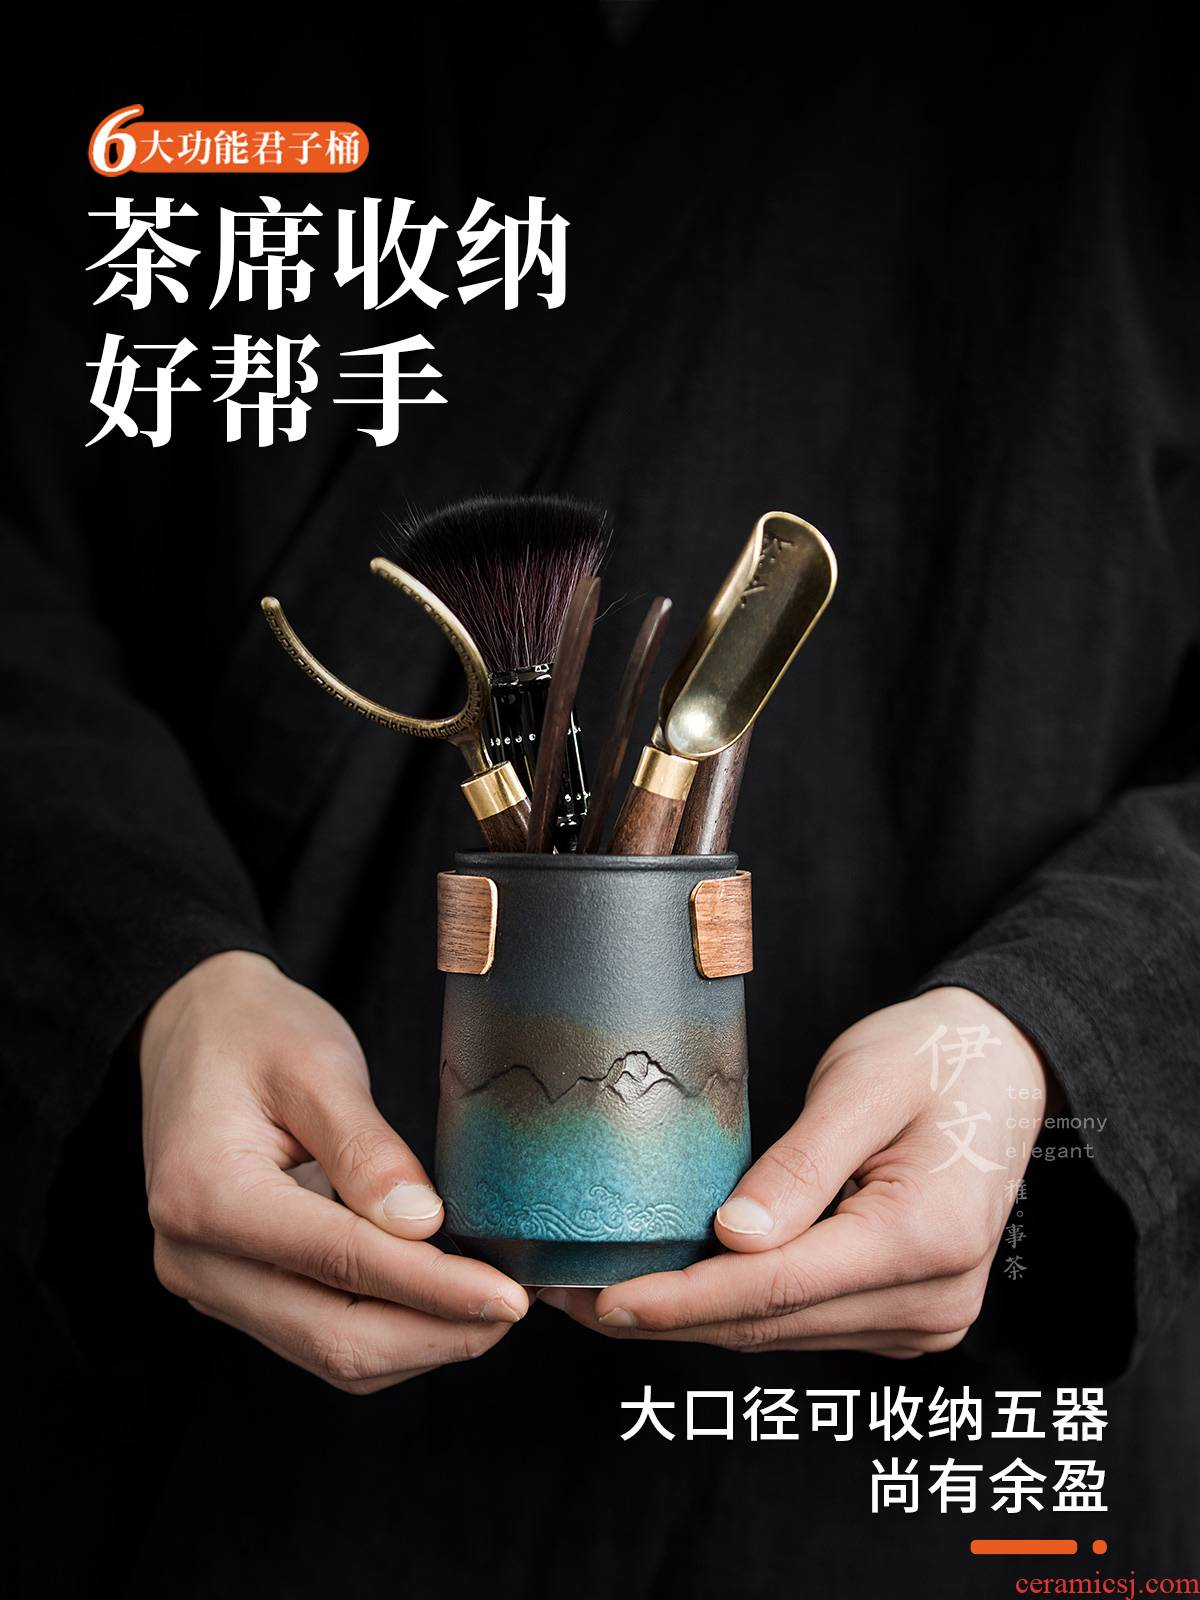 Evan ceramic ebony tea six gentleman 's suit 6 gentleman kung fu tea set ChaZhen ChaGa parts books